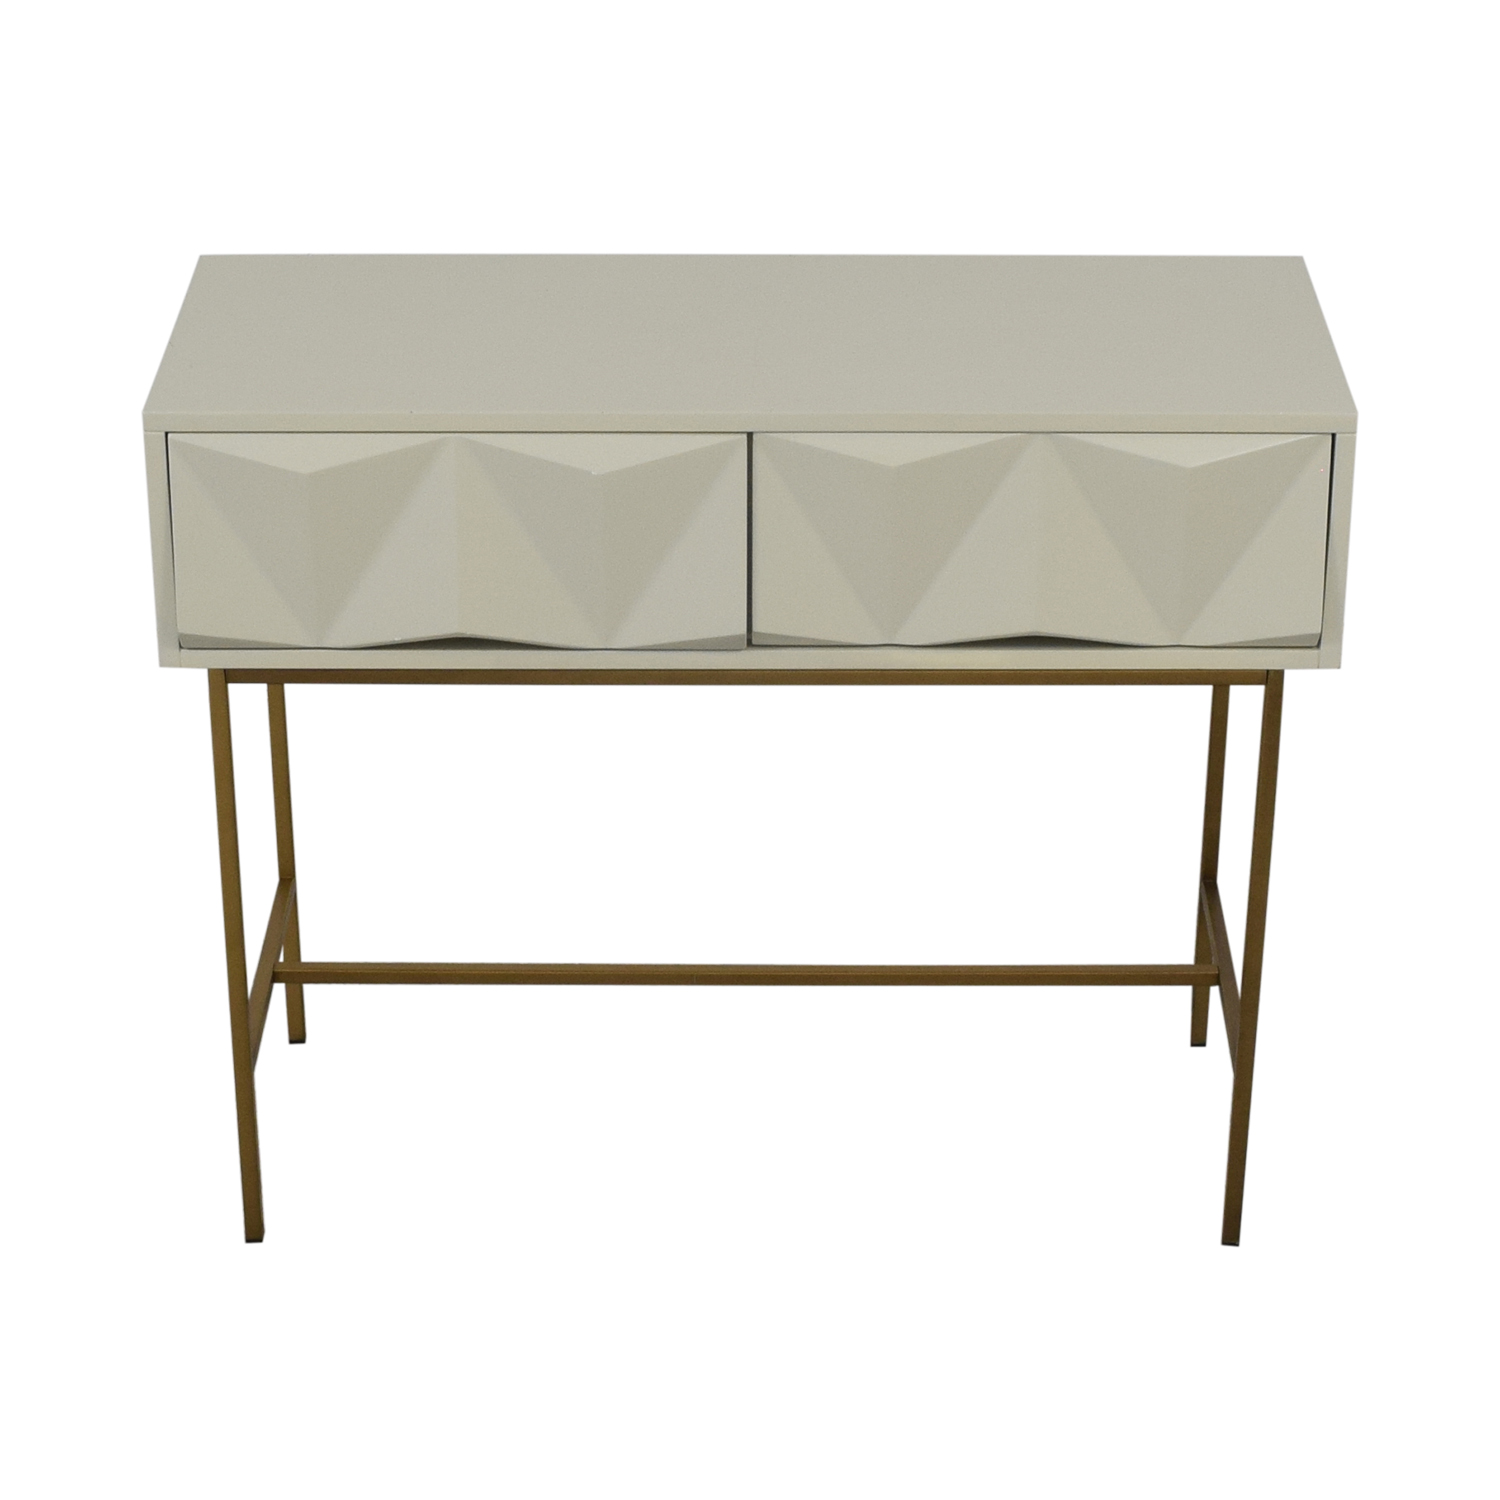 West Elm West Elm Sculpted Geo Console Accent Tables